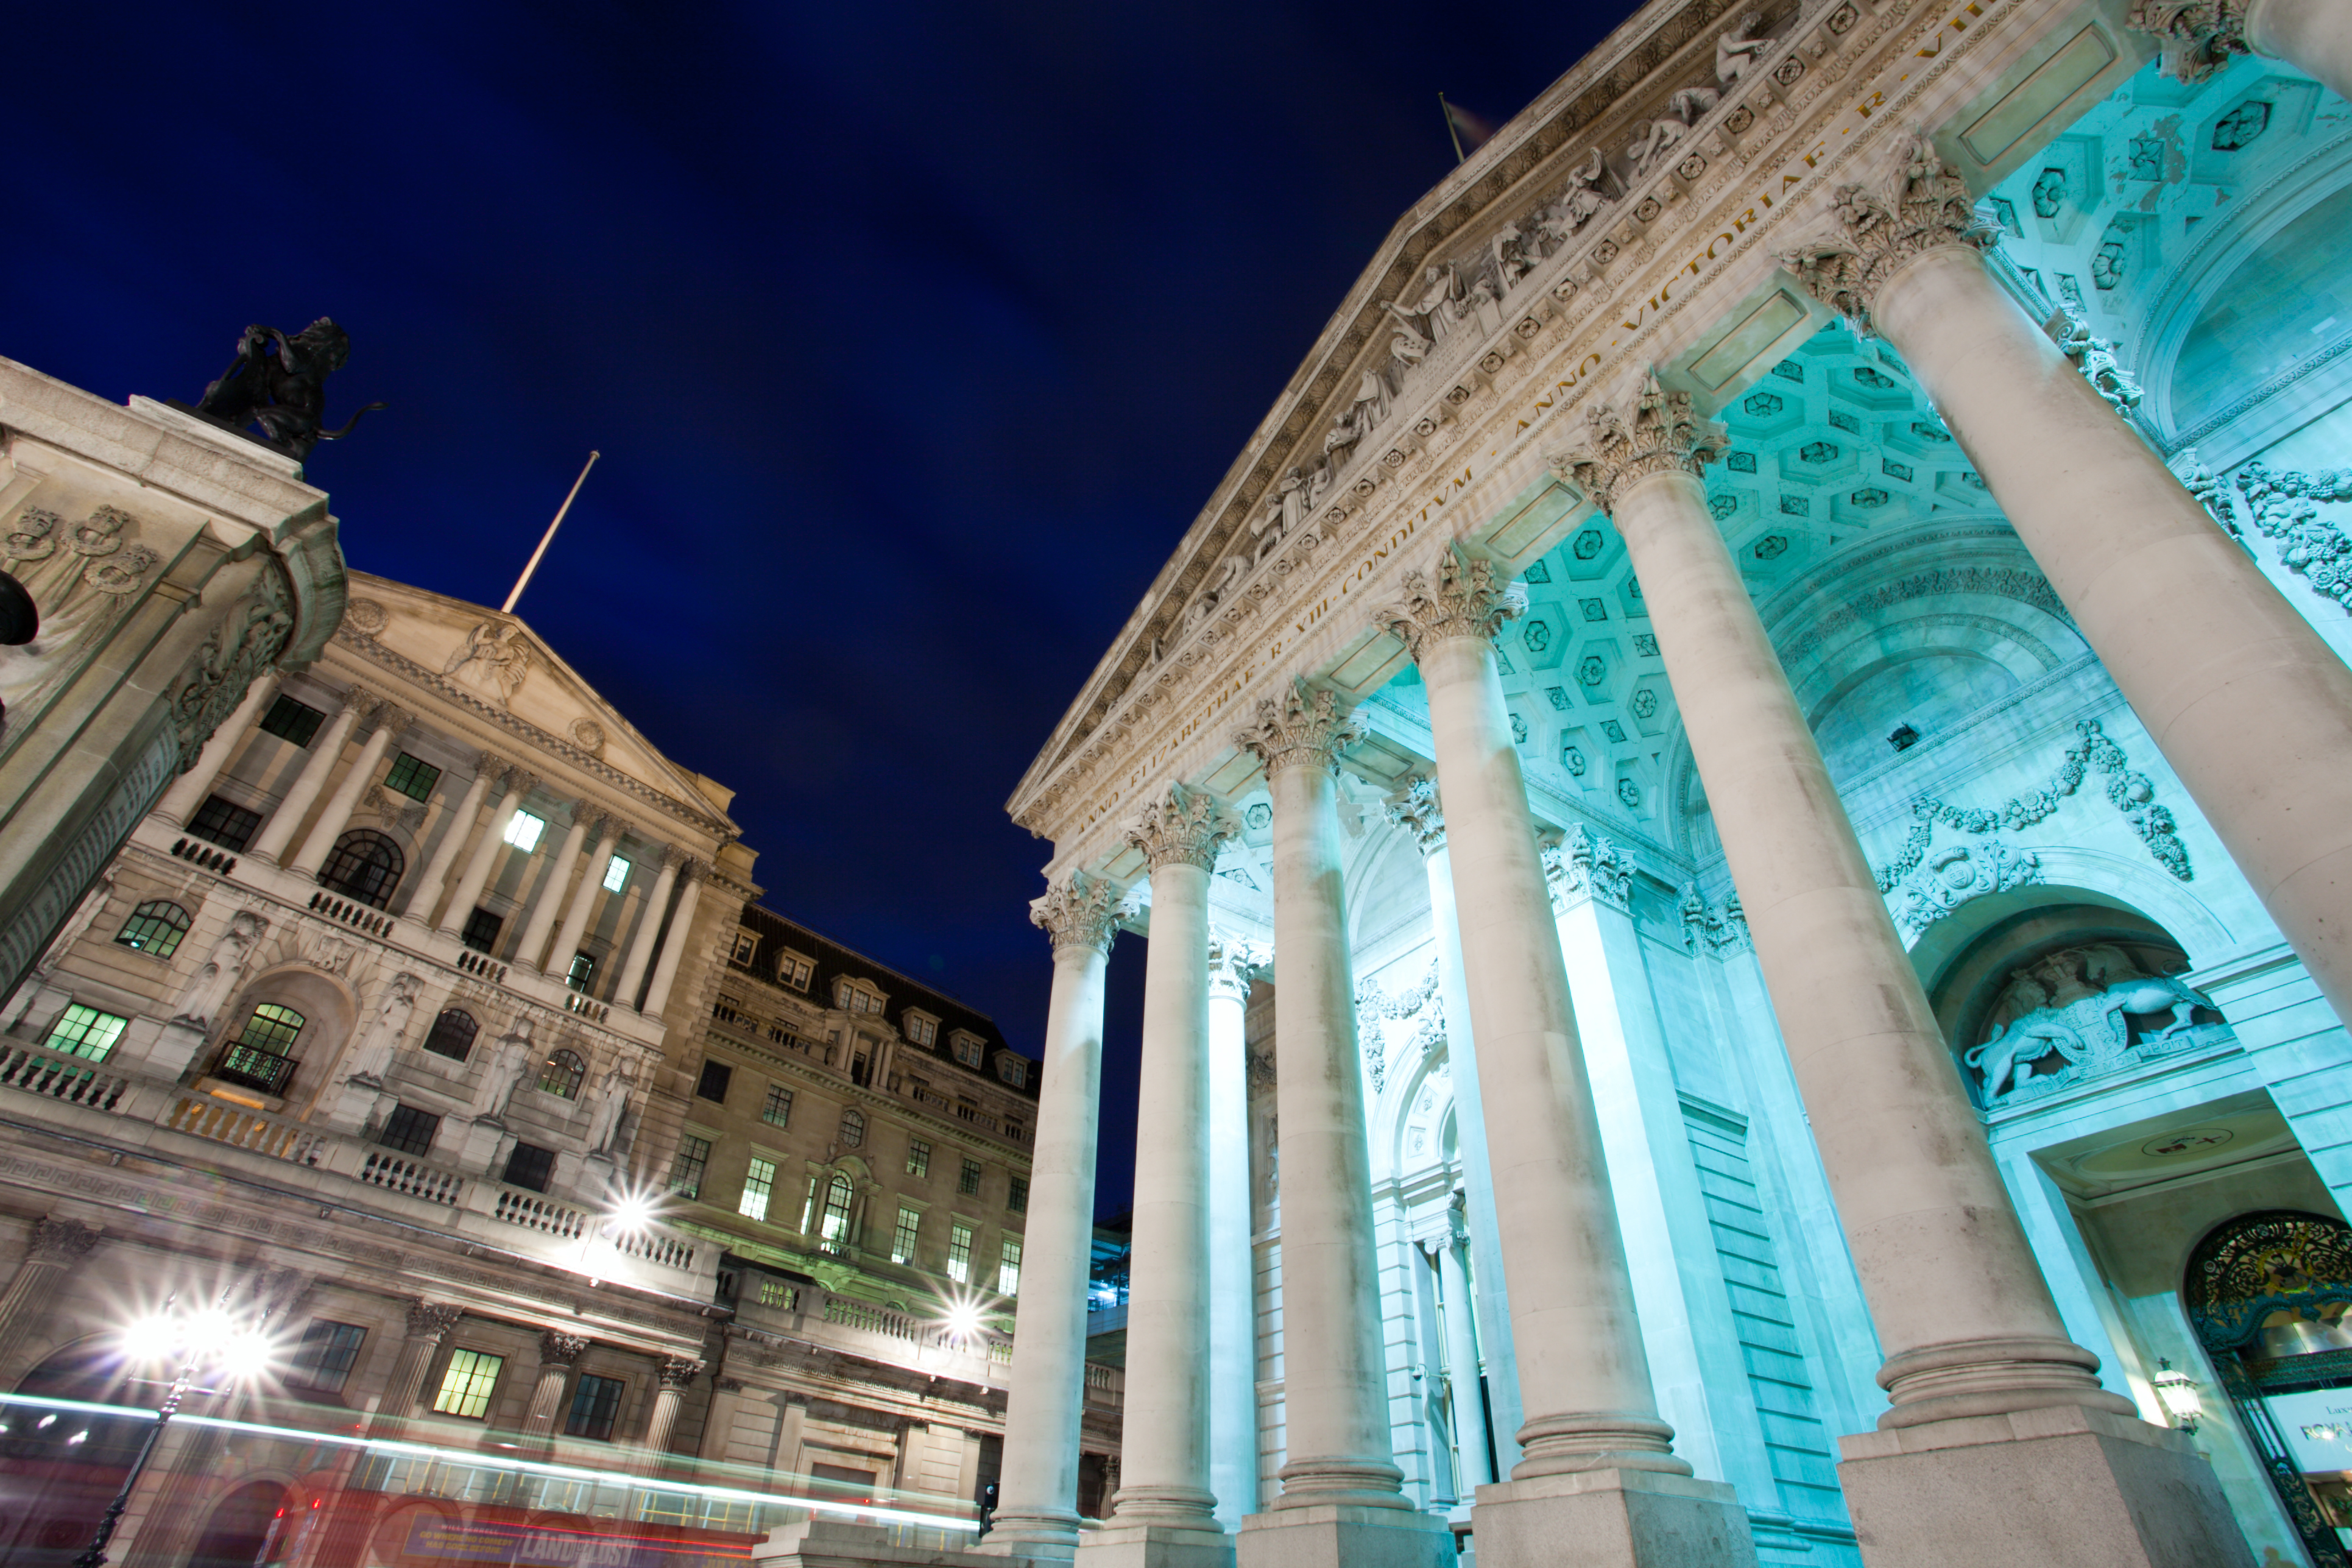 'Time will tell' on UK economic recovery